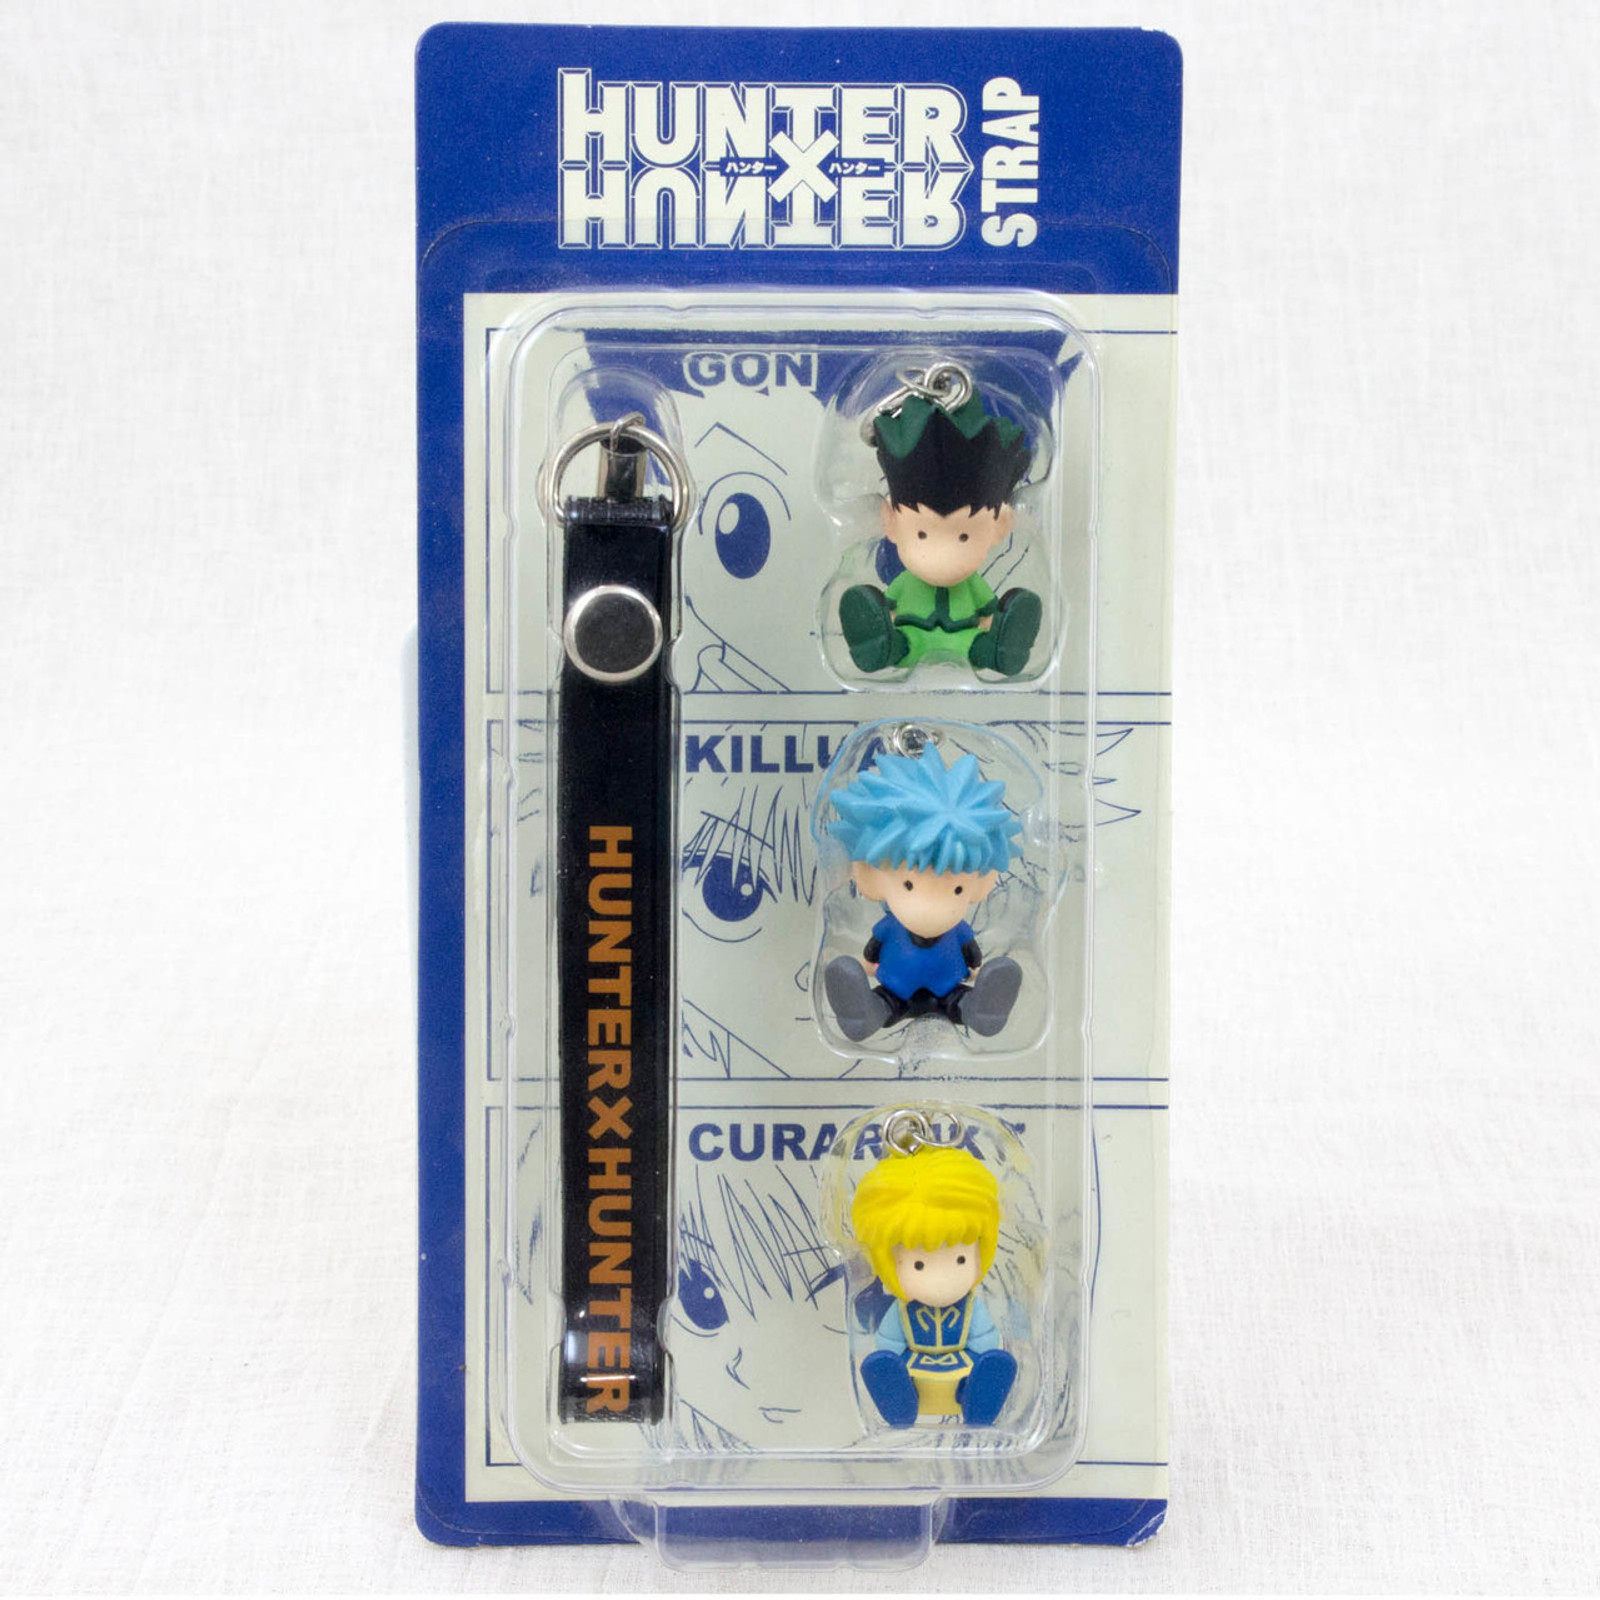 HUNTER x HUNTER Figure Strap Shonen Jump [Gon / Killua / Kurapika] JAPAN ANIME MANGA